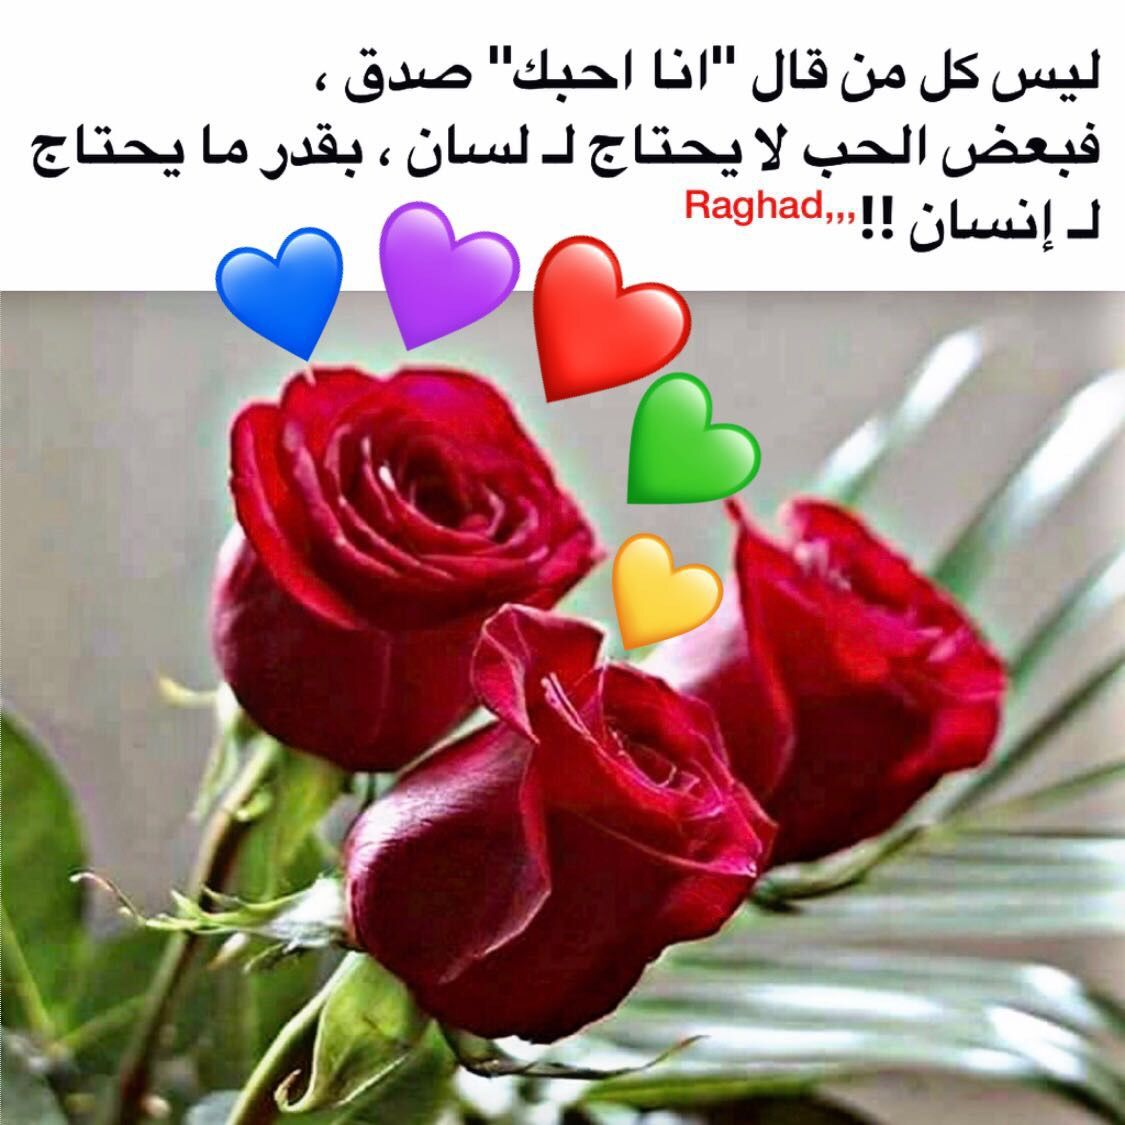 Desertrose الحب يحتاج إلى إنسانية Beautiful Arabic Words Love Words Flowers